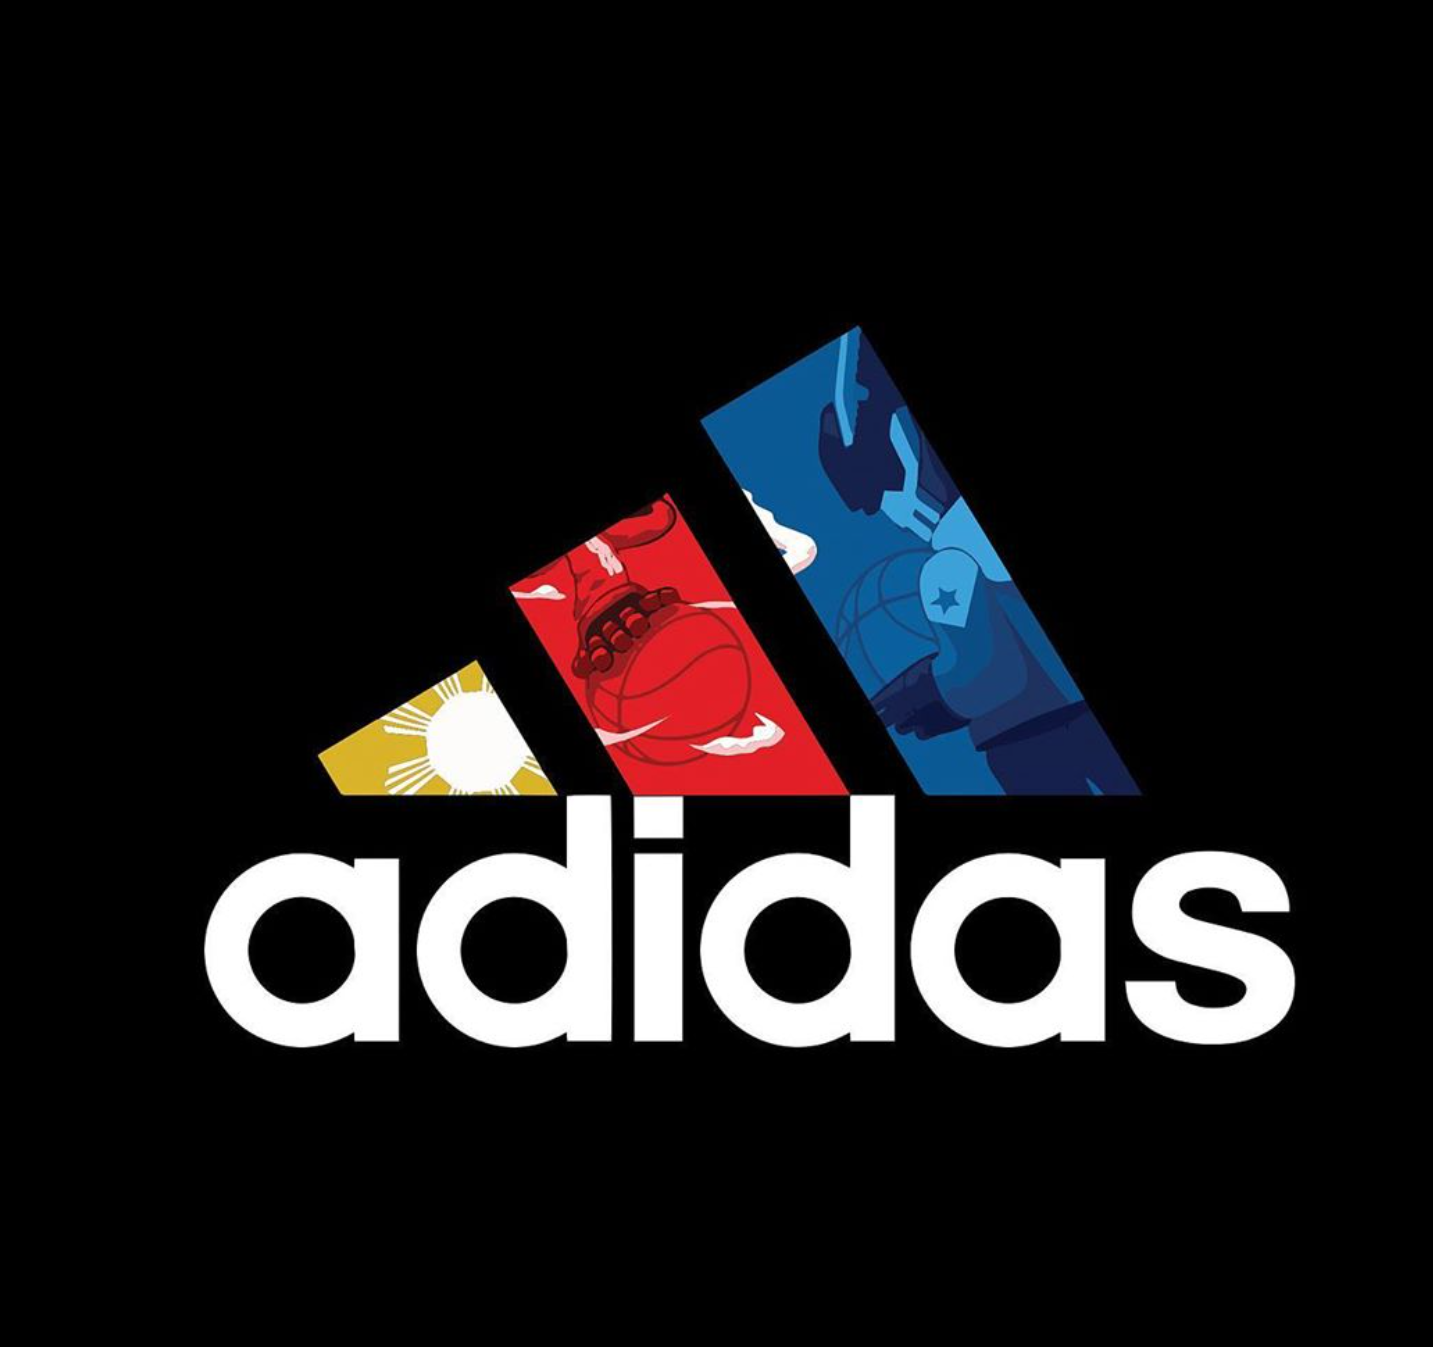 quiccs and adidas logo collaboration design